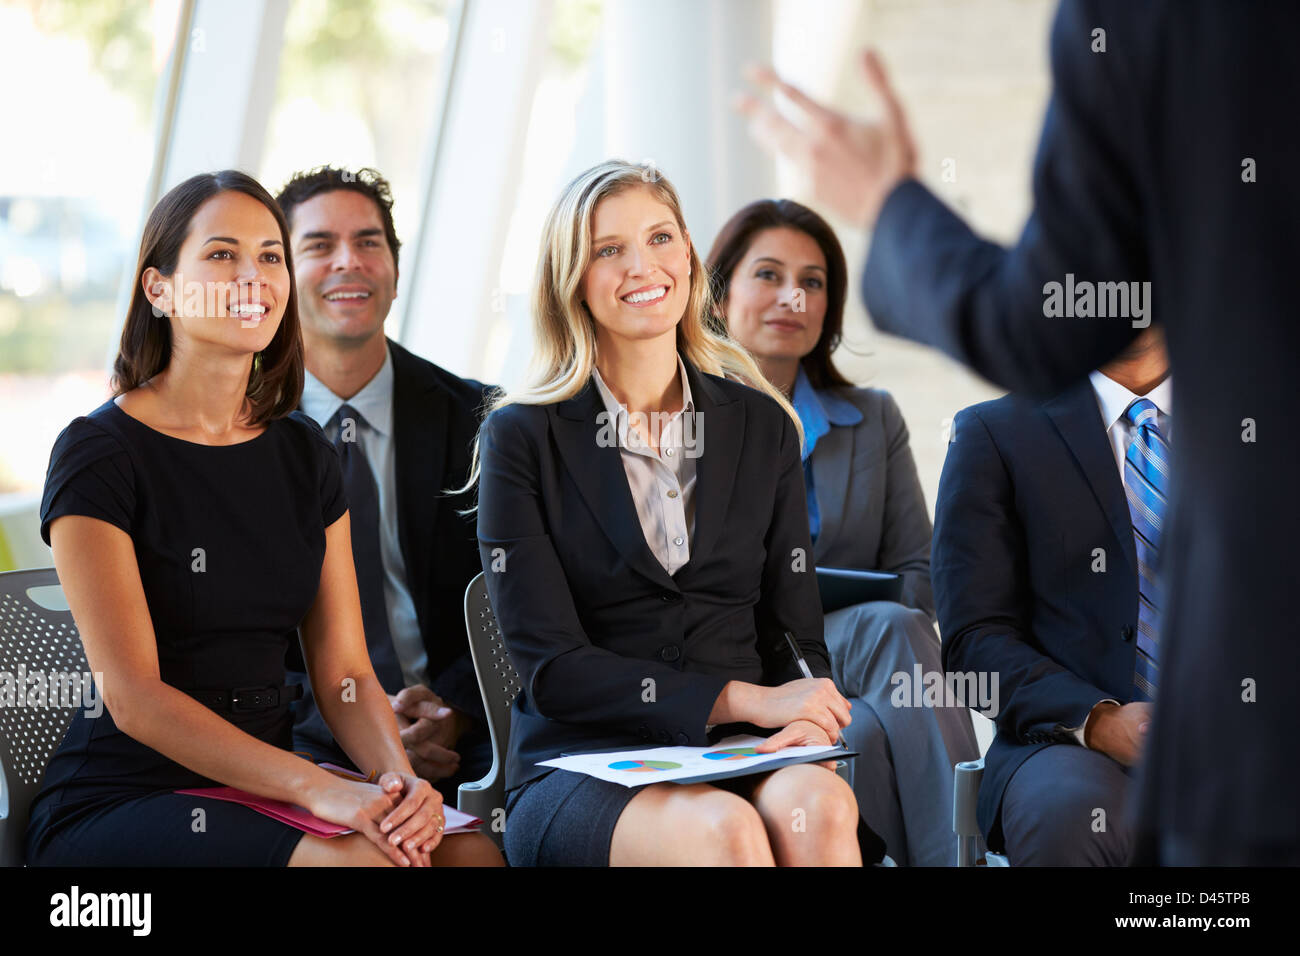 Audience Listening To Presentation At Conference - Stock Image